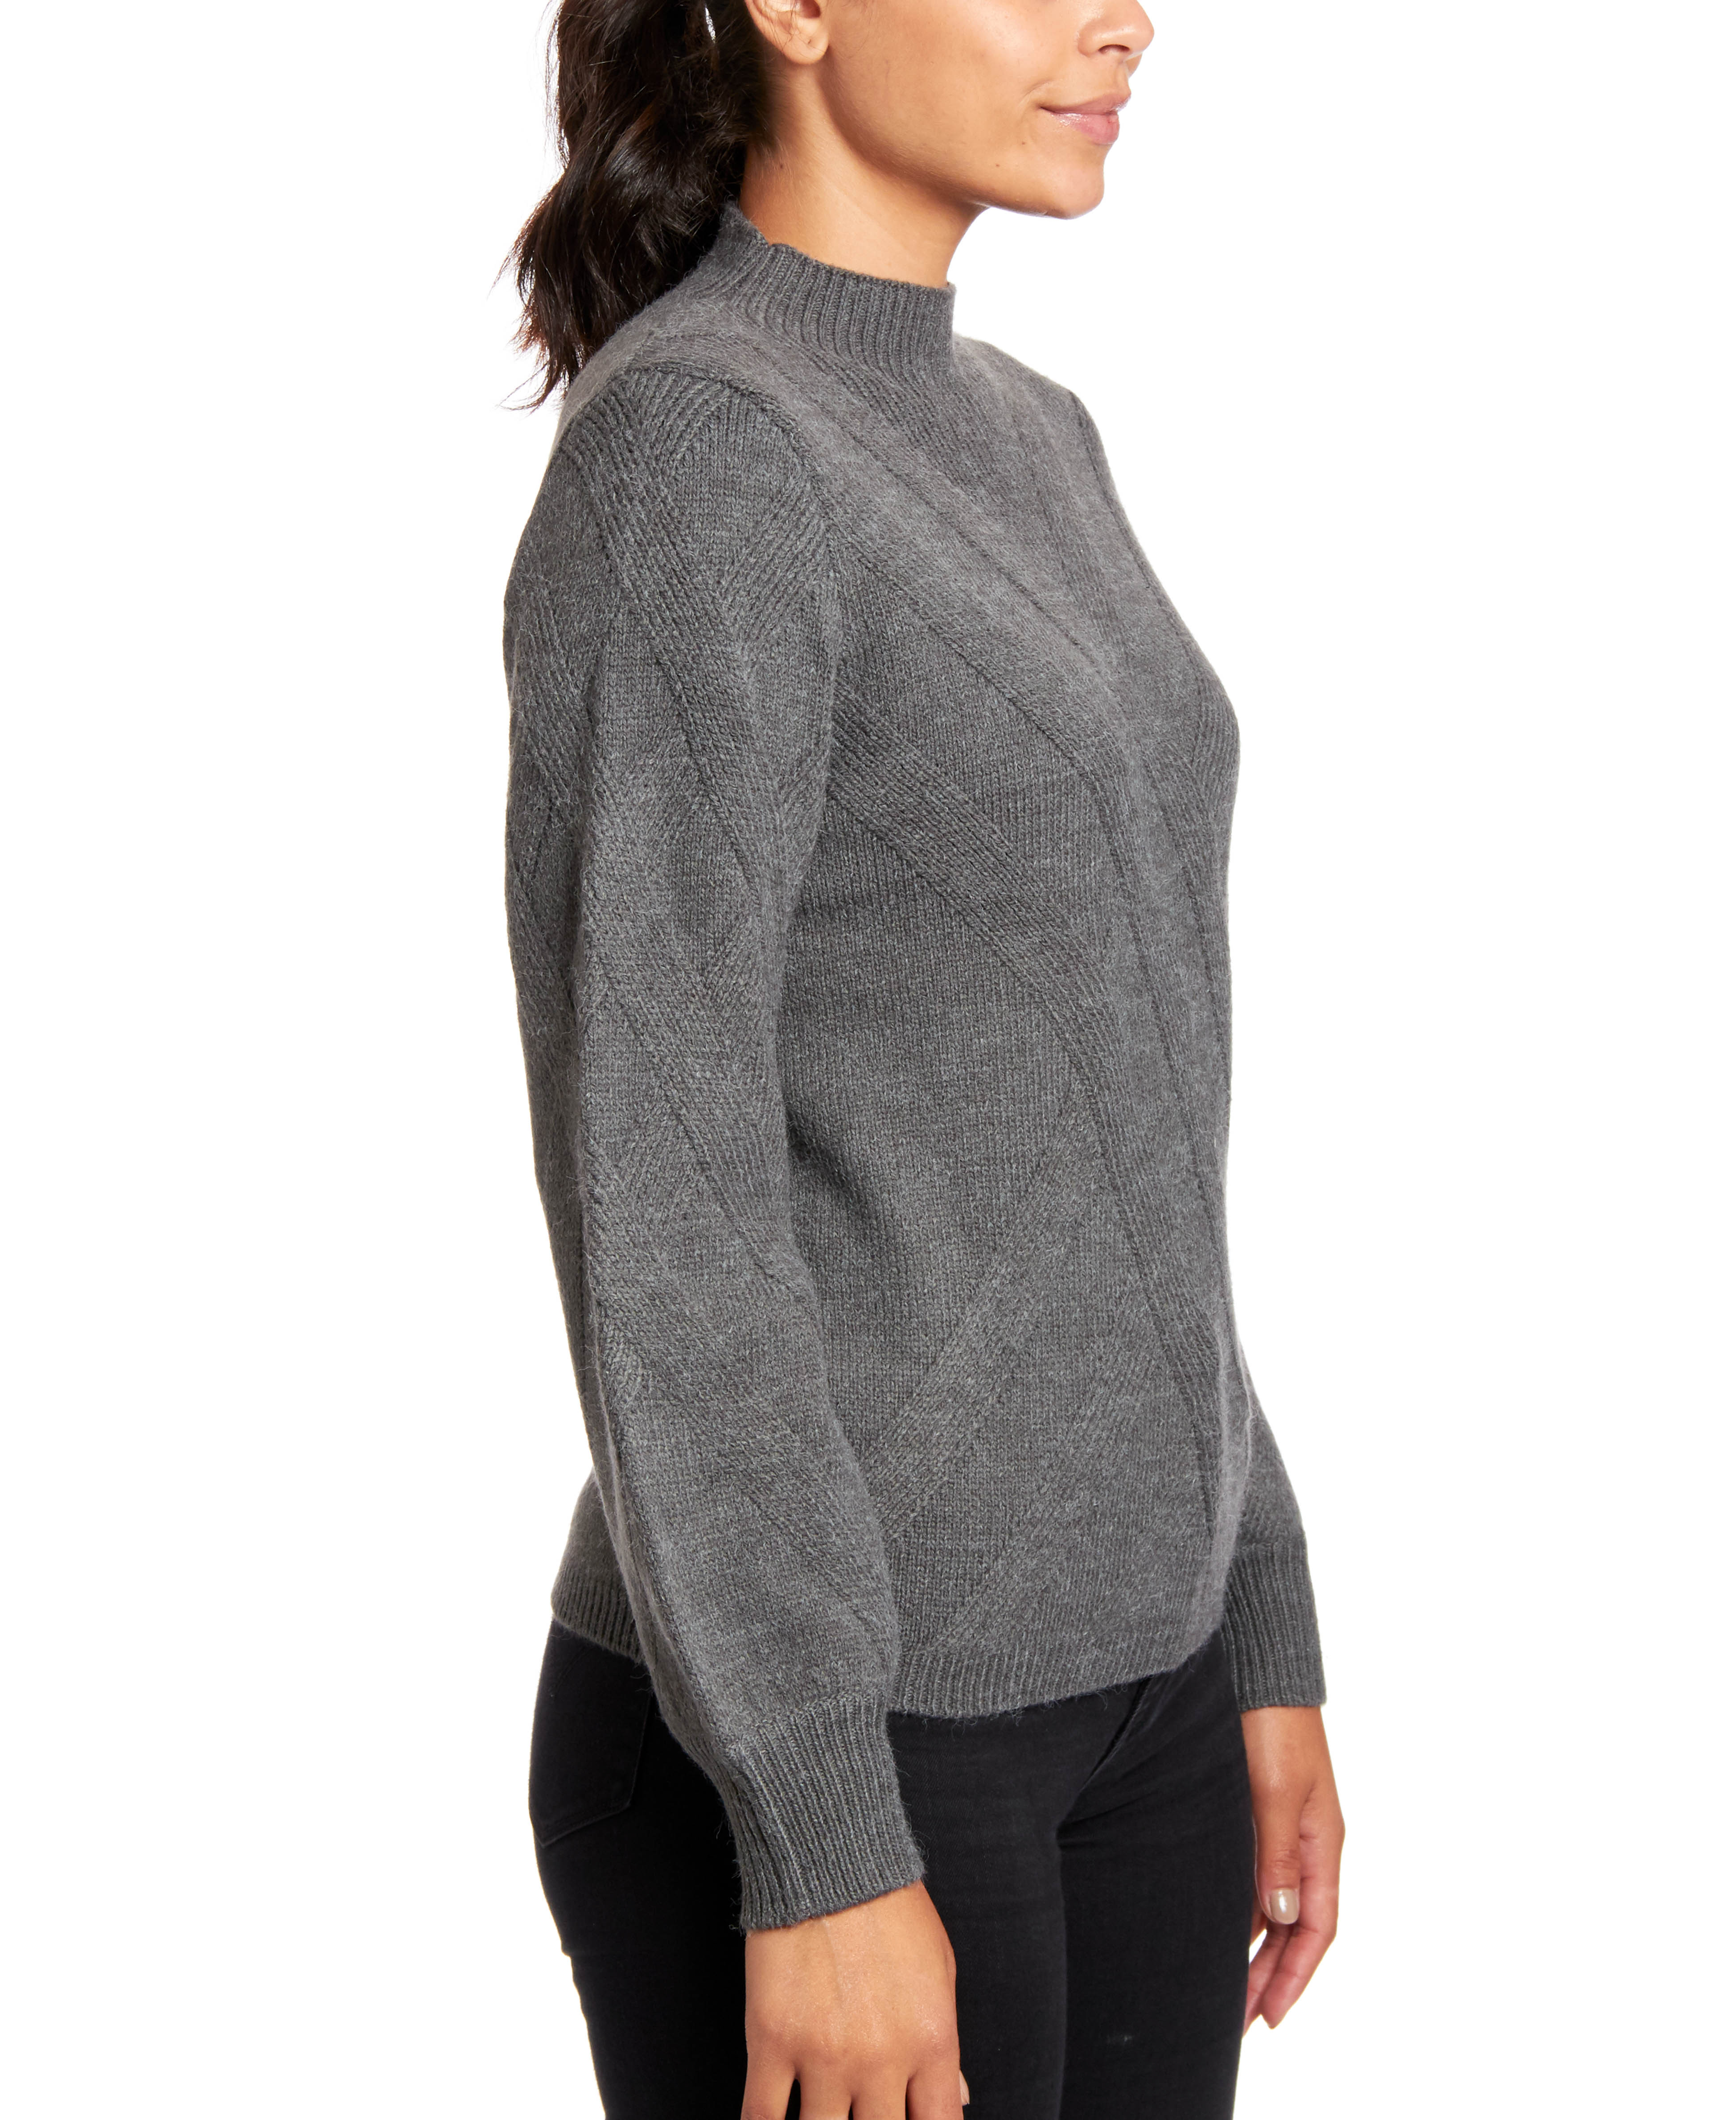 Mockneck Sweater With Cross Stitch Pattern In Grey